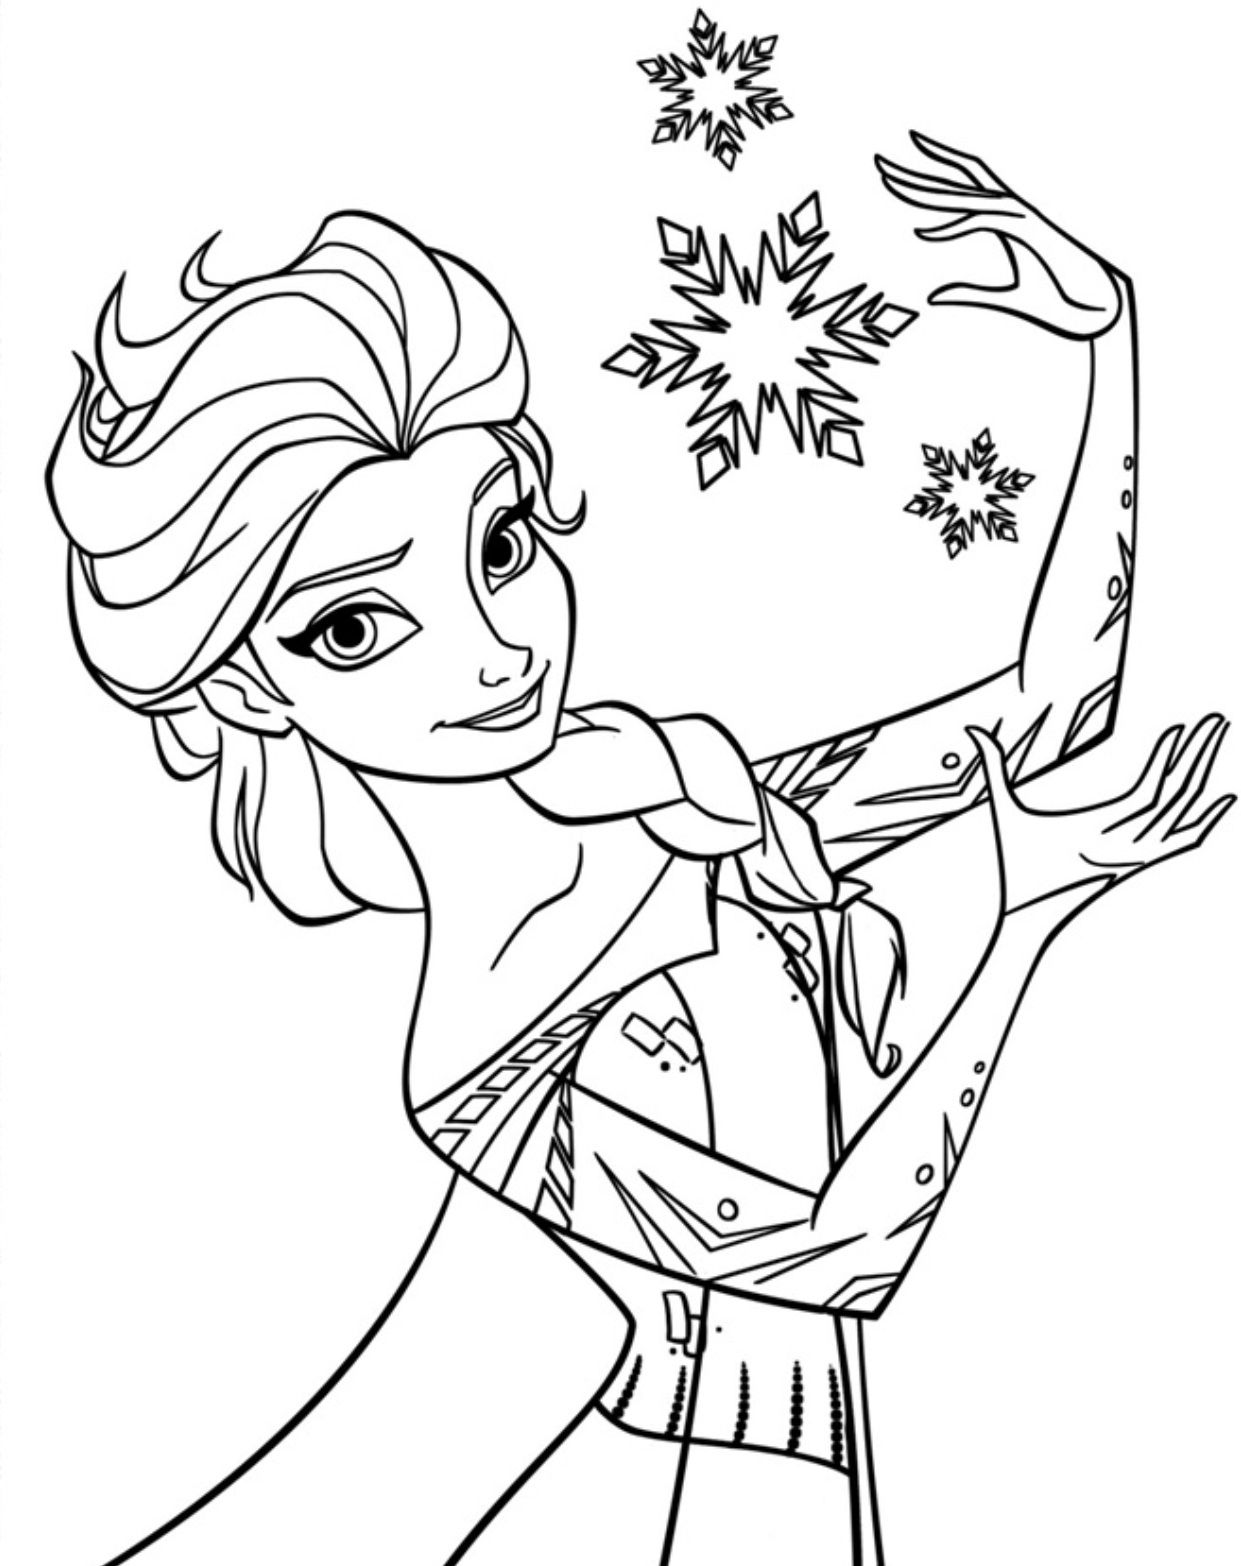 Frozen Coloring Pages Elsa Free Coloring Pages Elsa Coloring Pages Disney Princess Coloring Pages Frozen Coloring Sheets